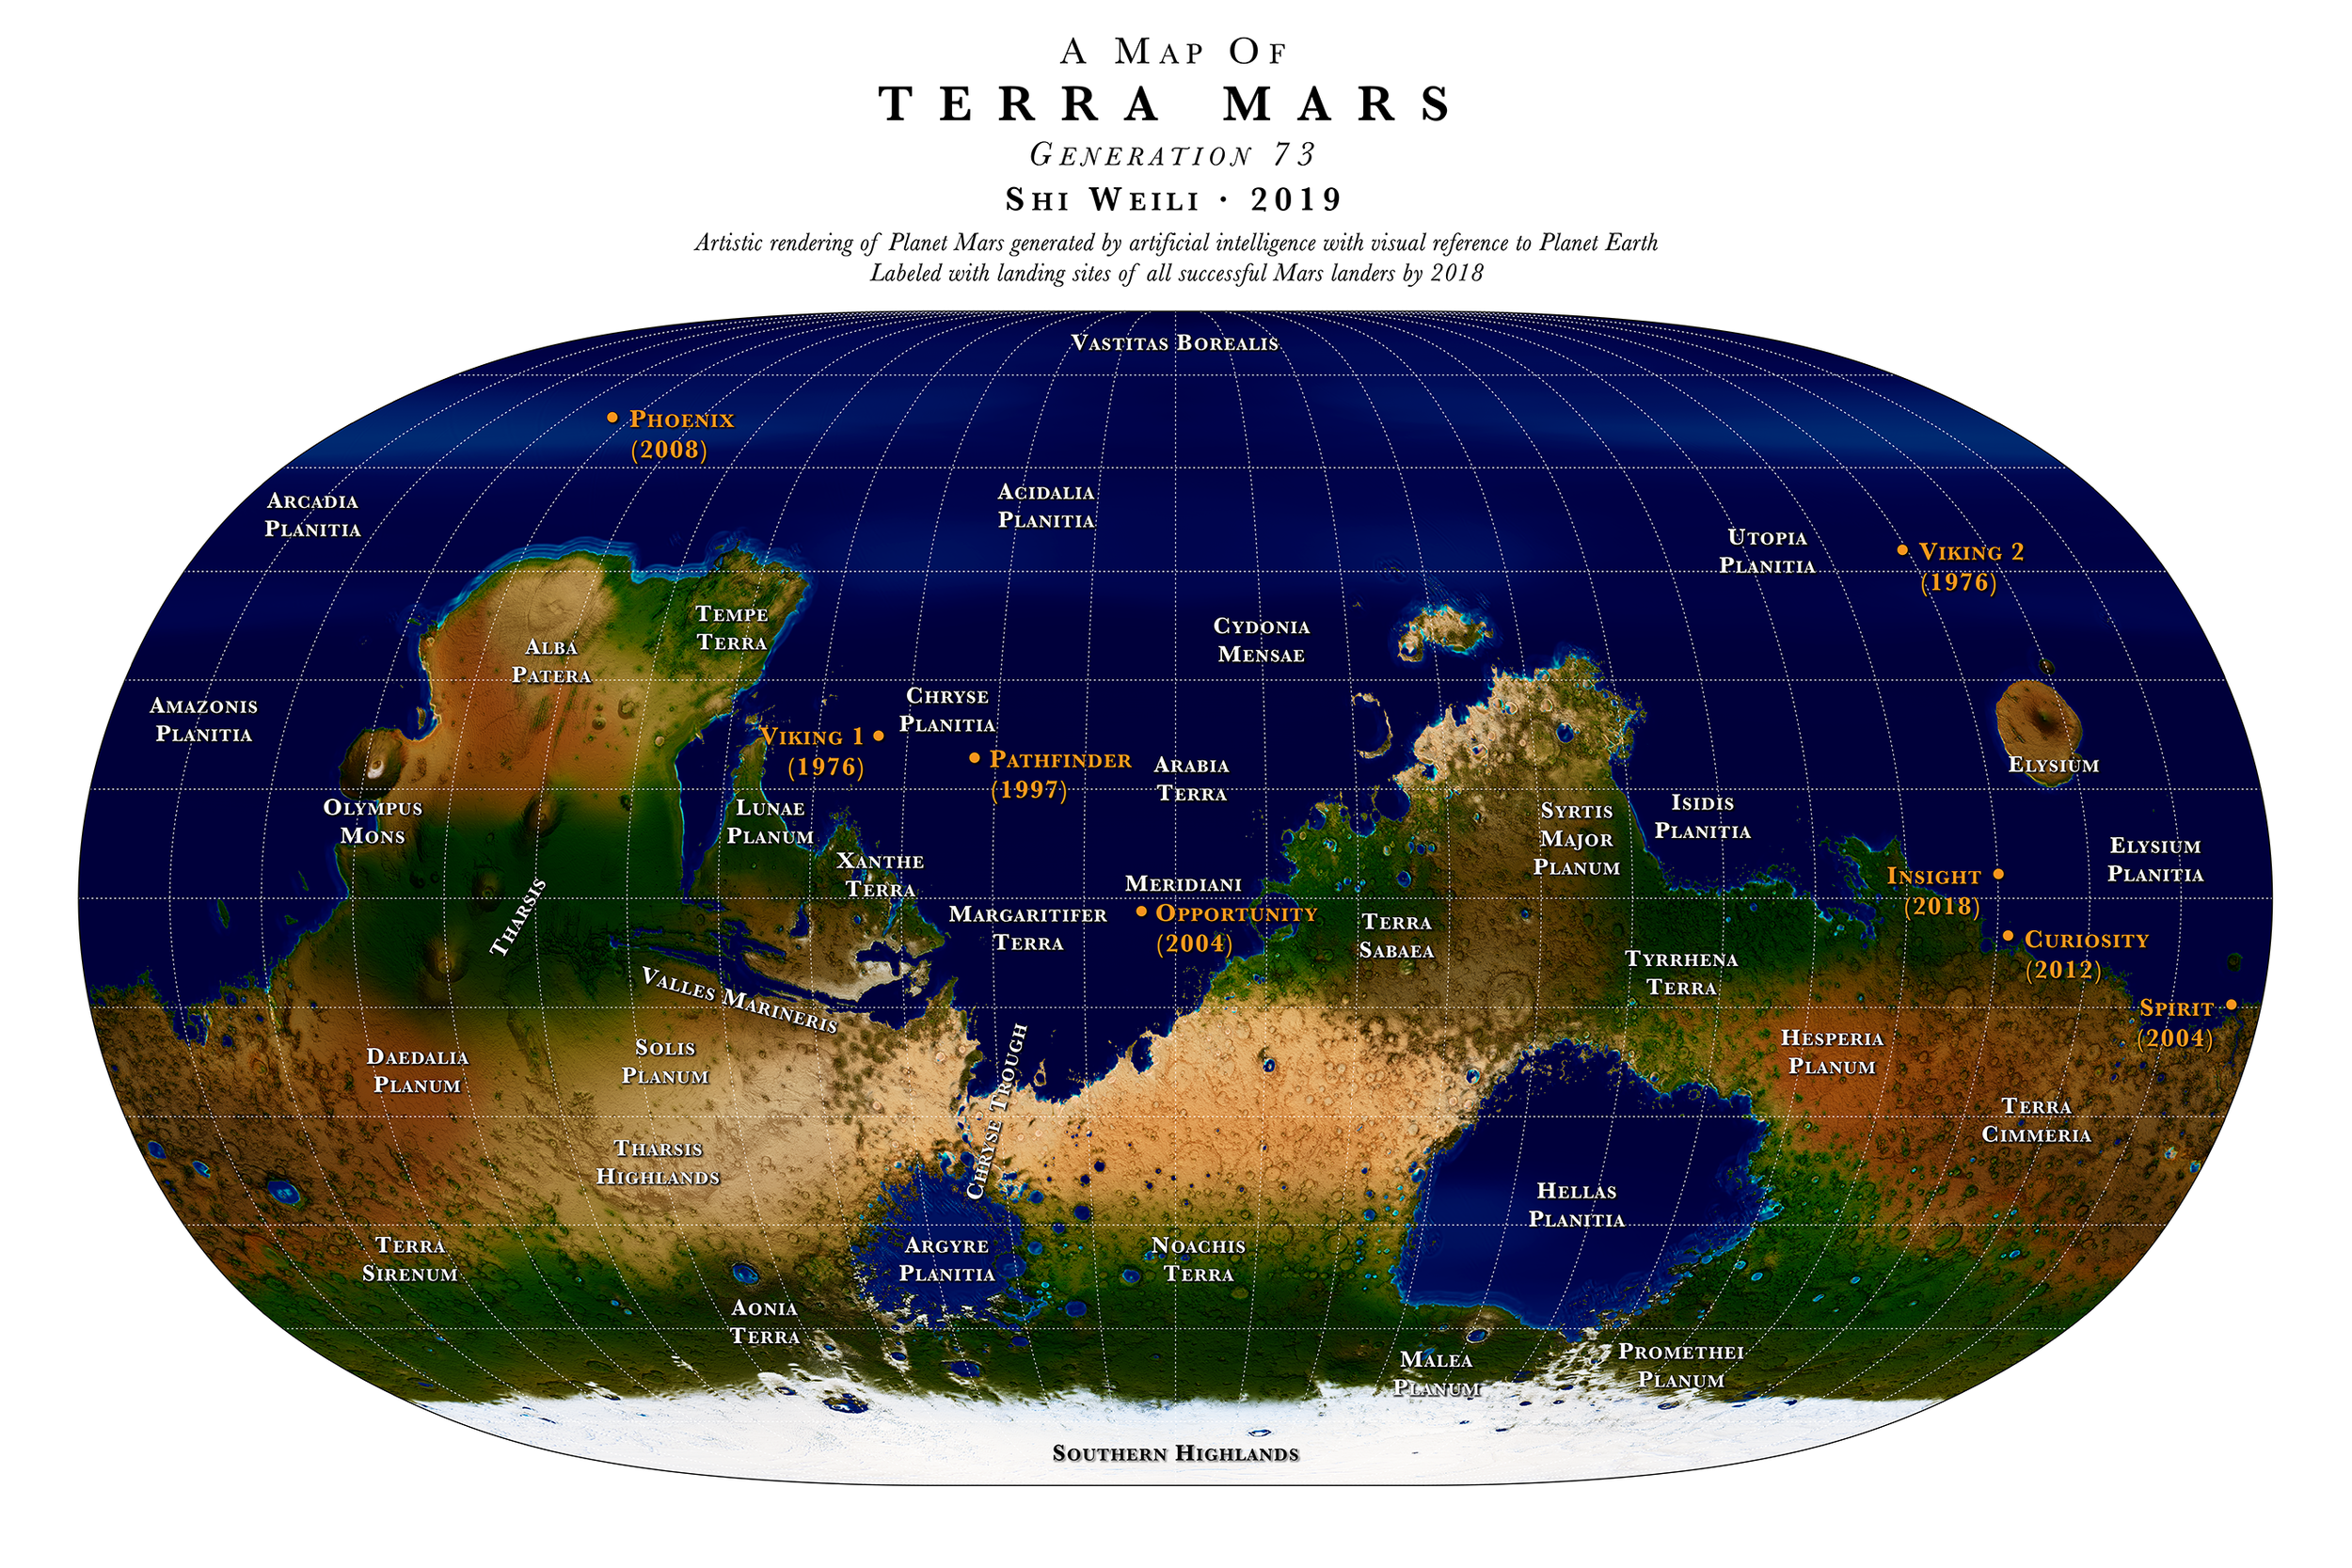 A Map of  Terra Mars  Generation 73  2019. Labeled with landing sites of all successful Mars landers by 2018.